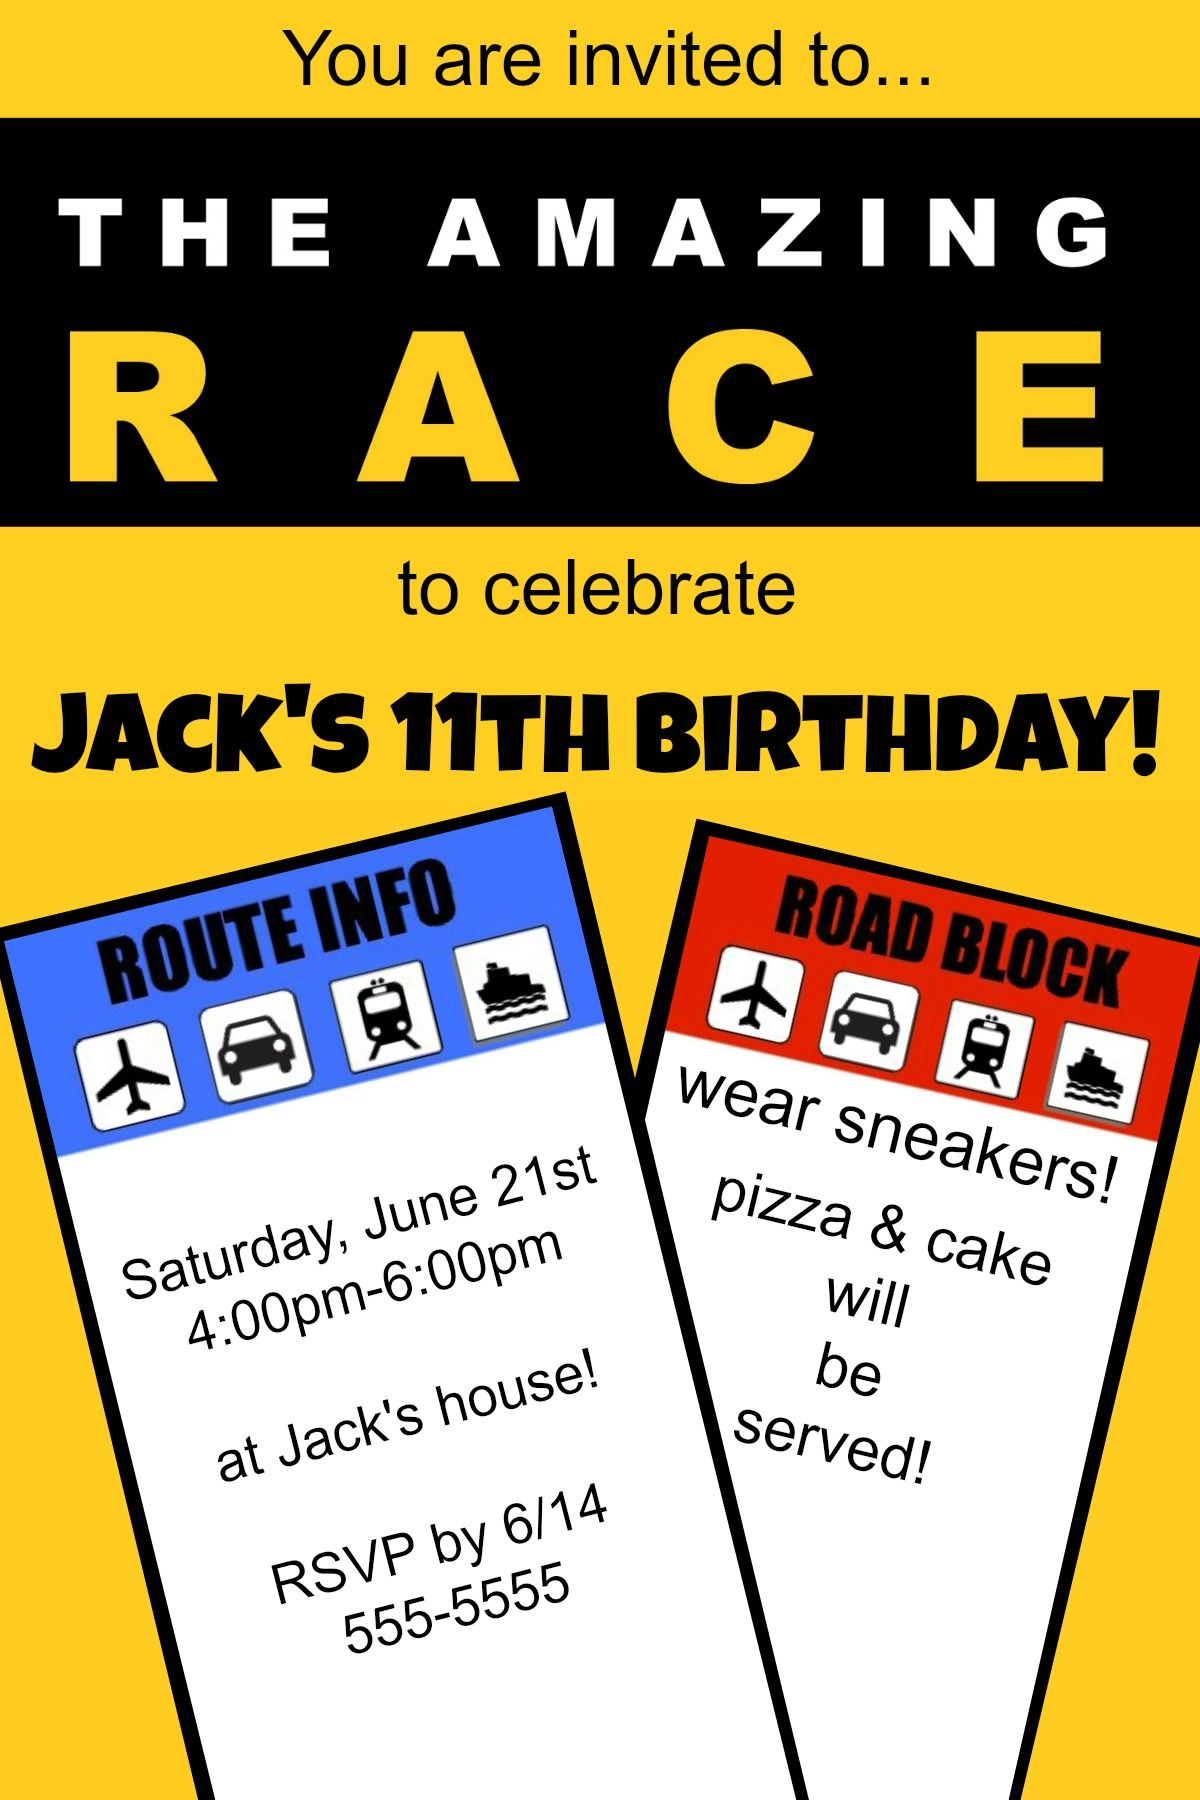 Fantastic Ideas For Hosting An Amazing Race Birthday Party At Home This Post Includes Free Printable Invitations Game